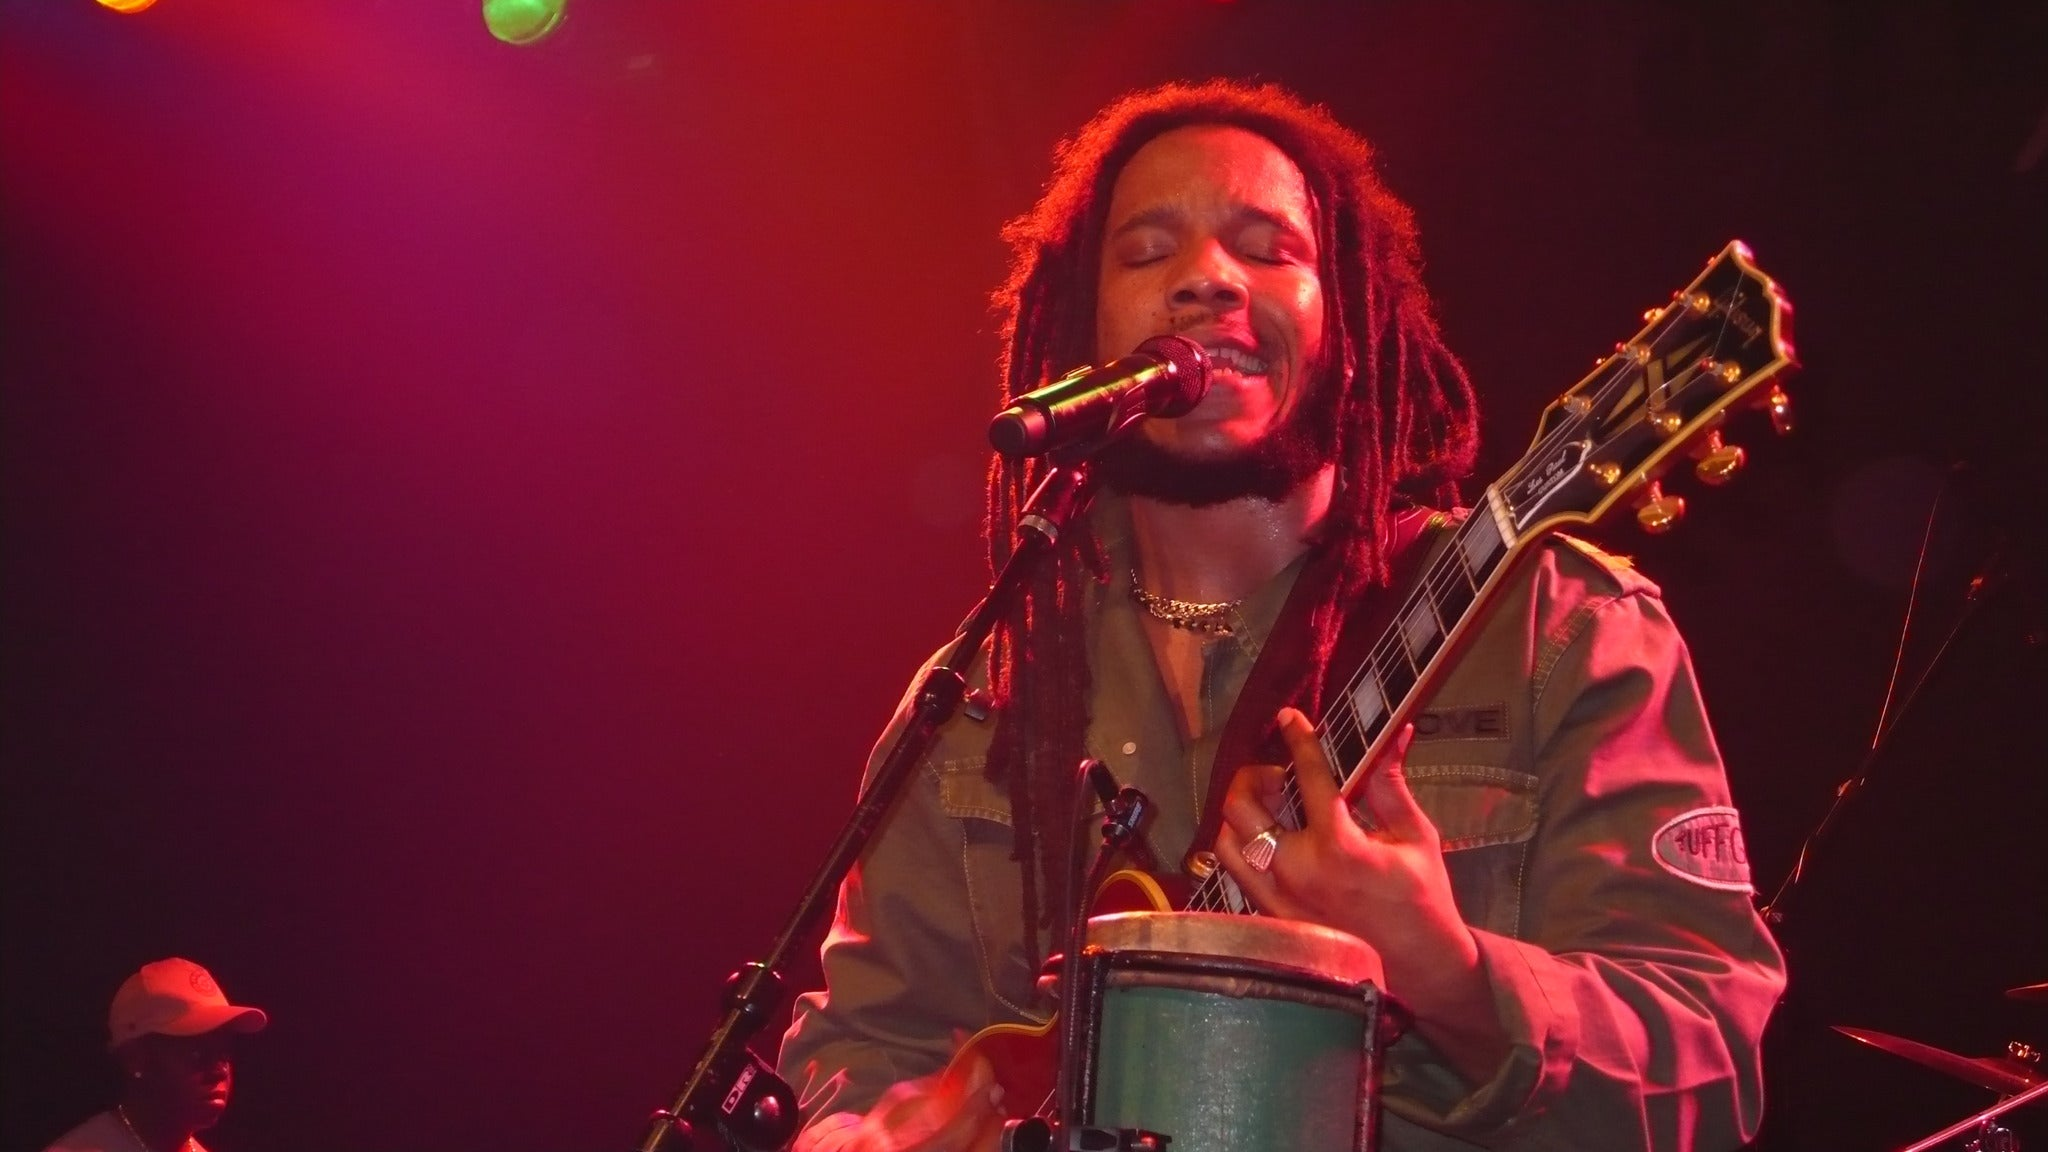 SORRY, THIS EVENT IS NO LONGER ACTIVE<br>Stephen Marley at Garden Amp at Garden Grove Amphitheater - Garden Grove, CA 92840